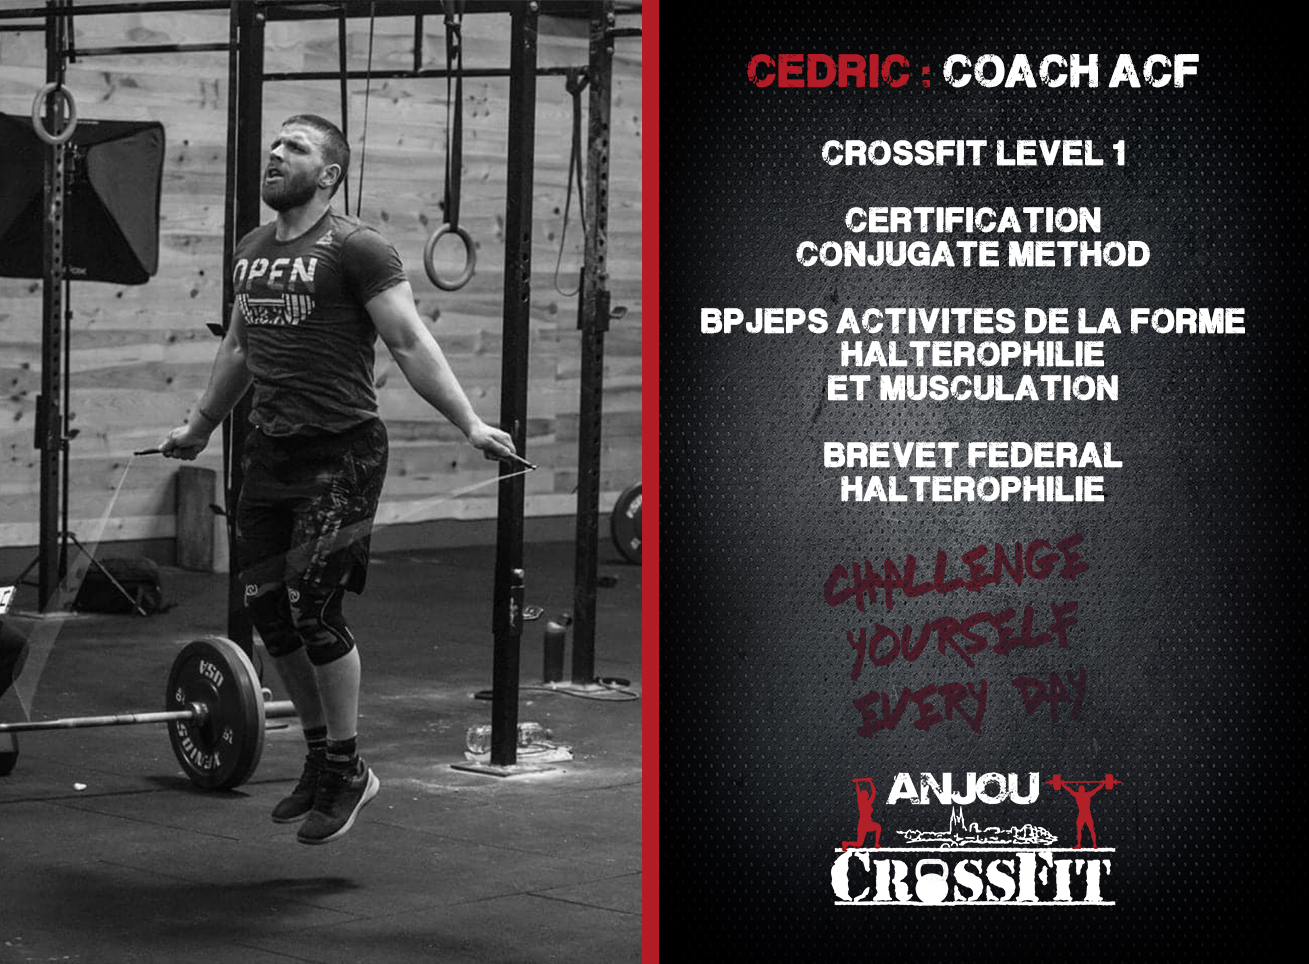 anjou-crossfit-coach-acf-cedric-courage